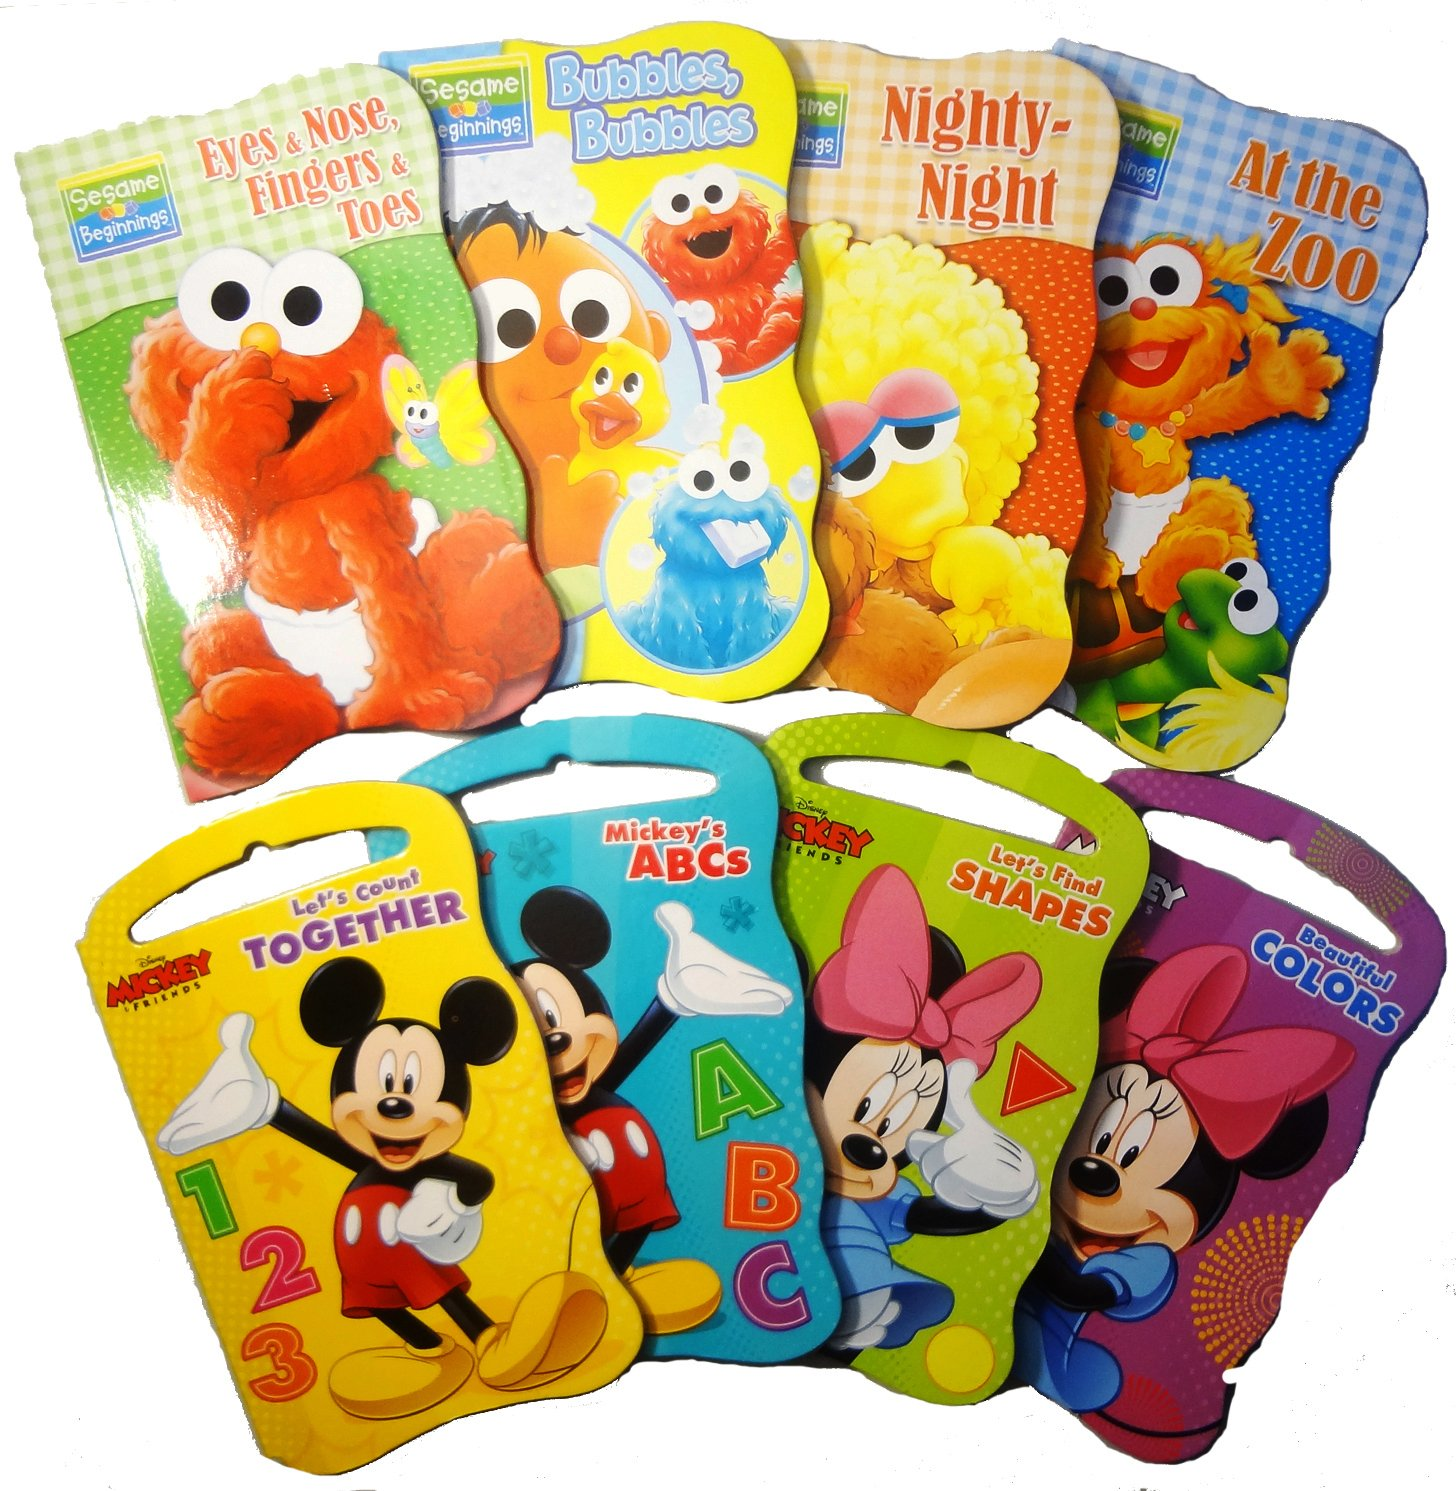 Sesame Street Set + Mickey Mouse and Friends Set 2 Set of Baby Toddler Beginnings Board Books Total 8 Books Bendon SG/_B00ZDO9JDW/_US